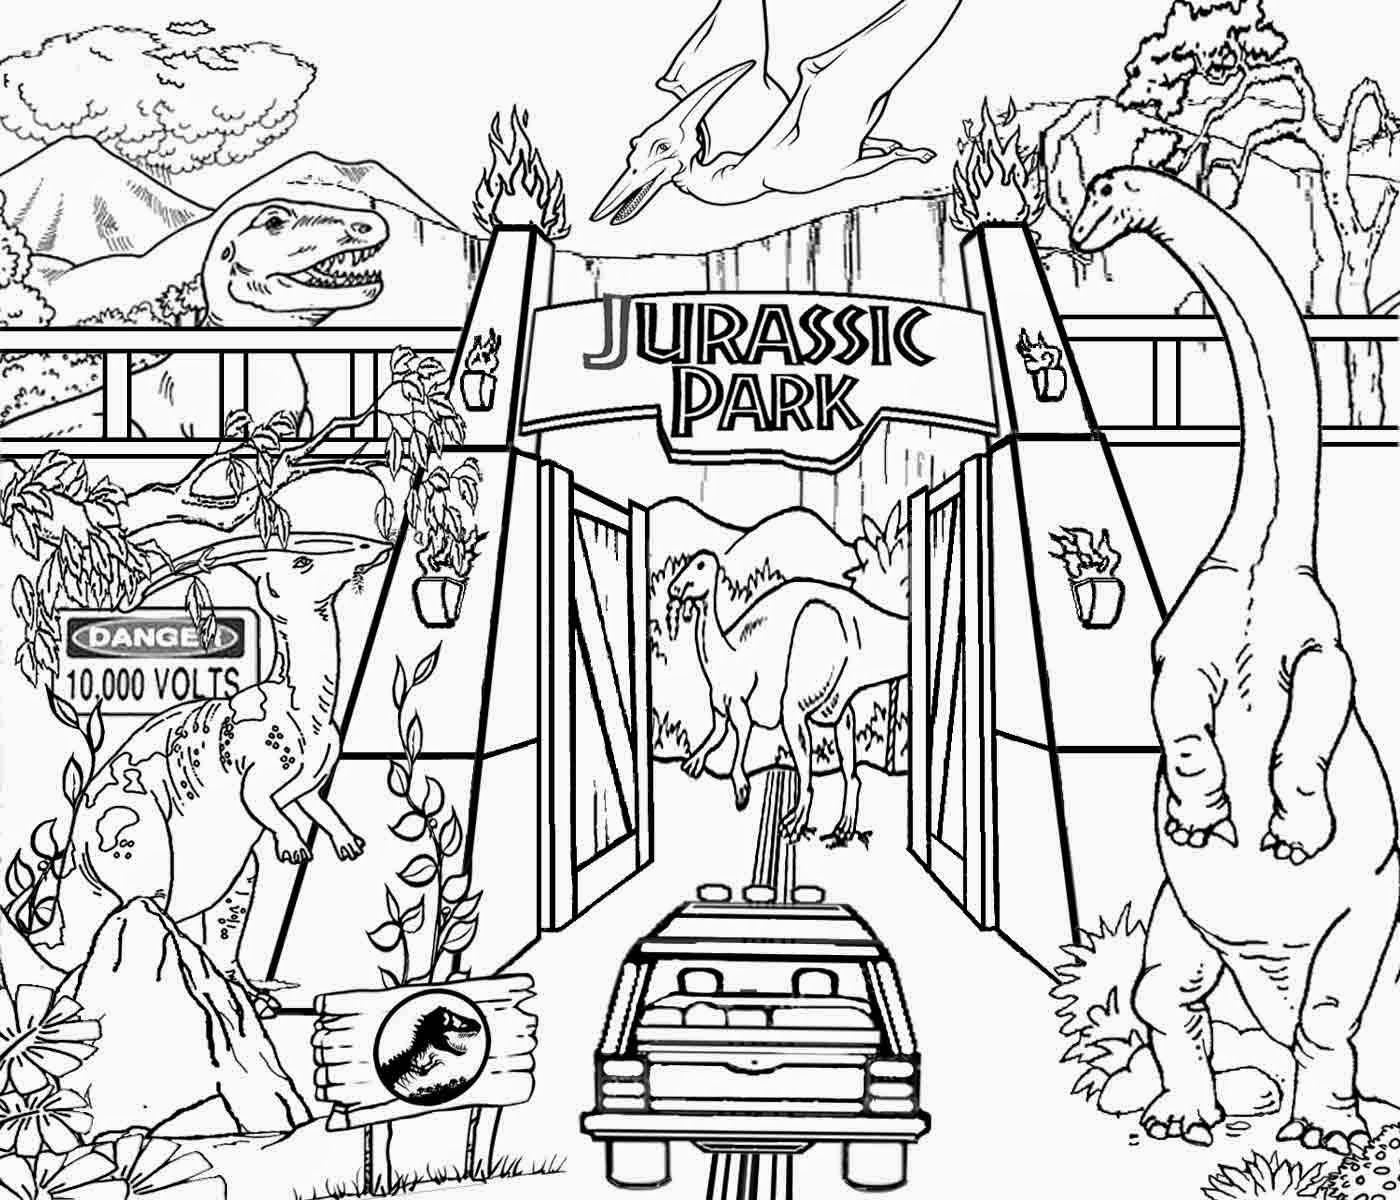 Dinosaurs coloring games online - Detailed Printable High Resolution Free Clipart Jurassic Park Dinosaur Coloring Pages For Older Kids